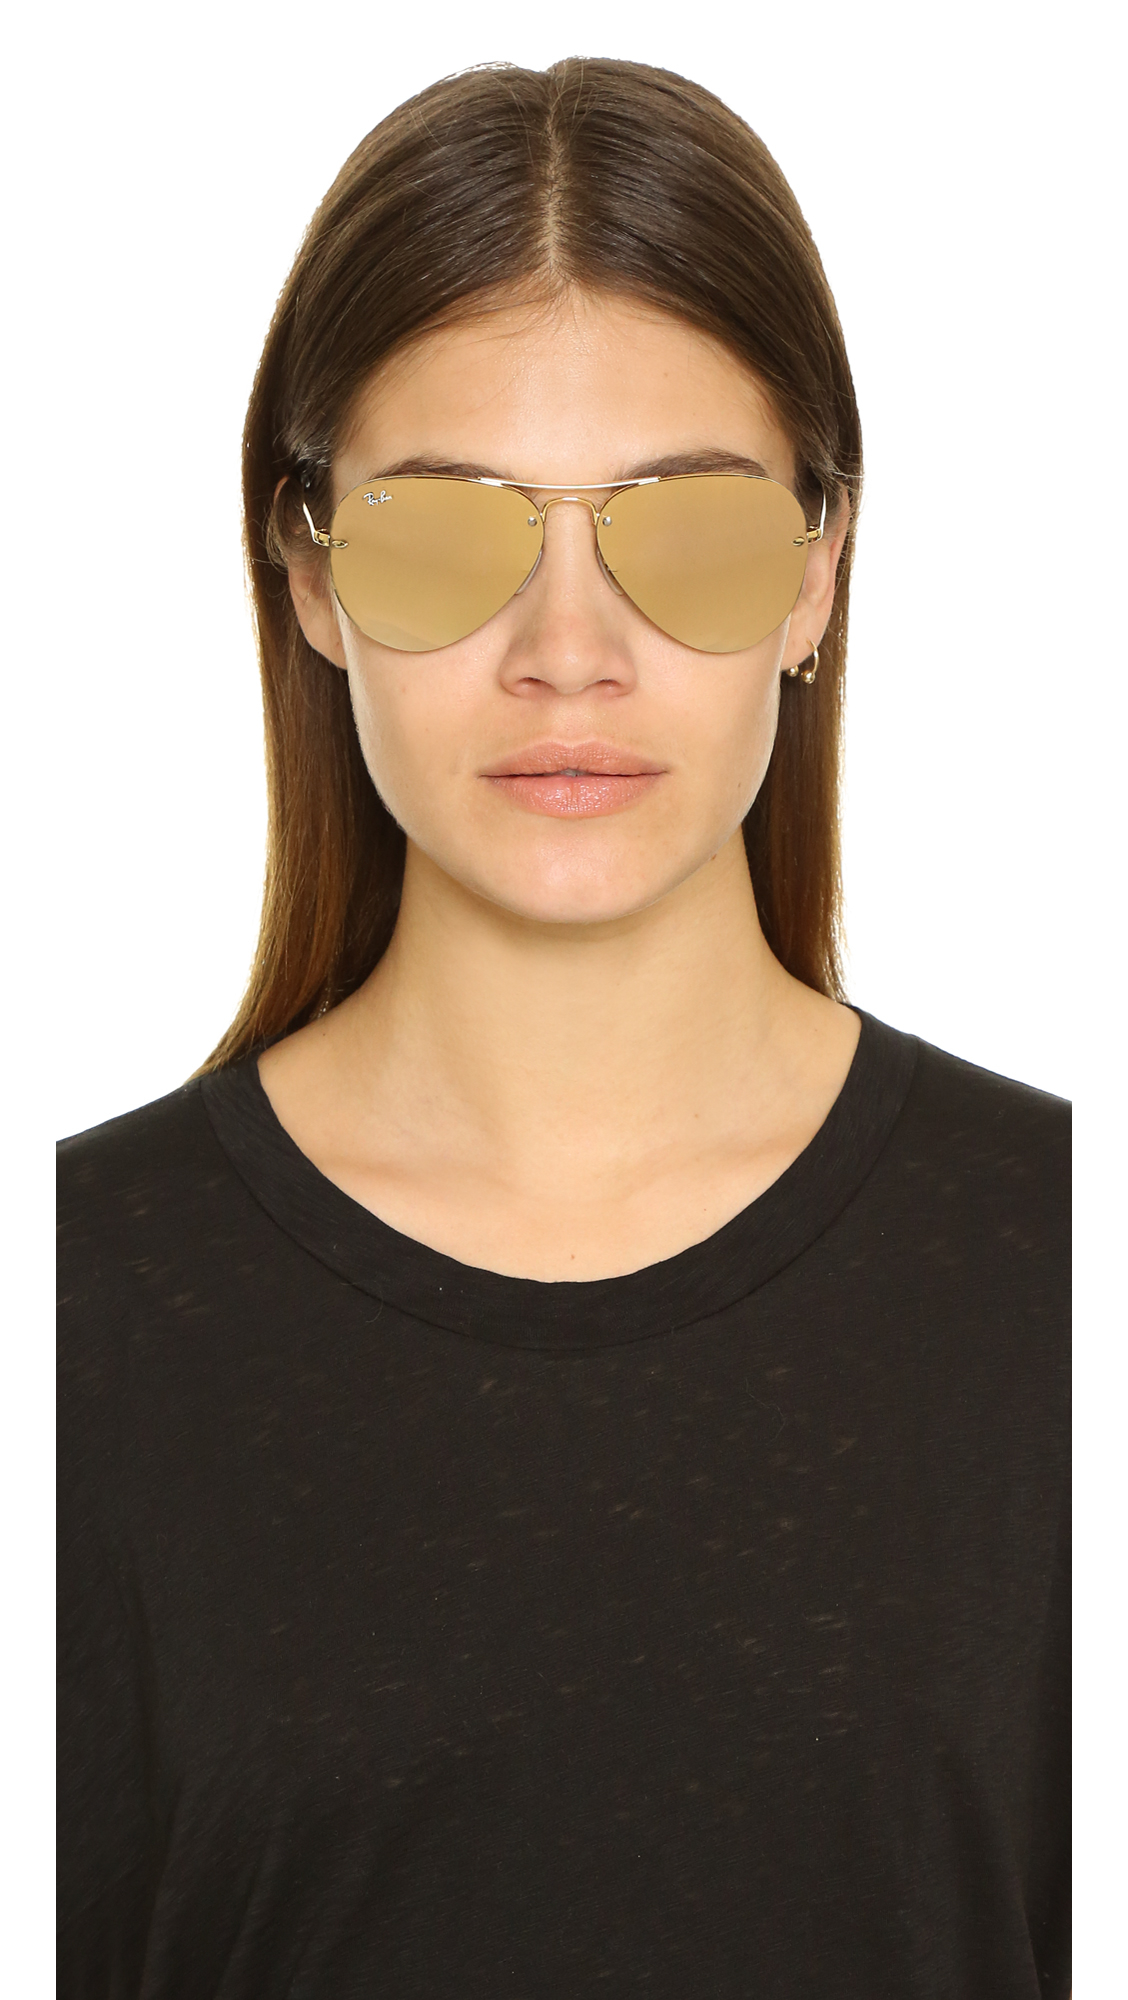 ray ban gold mirrored aviator sunglasses  gallery. previously sold at: shopbop · women's mirrored sunglasses